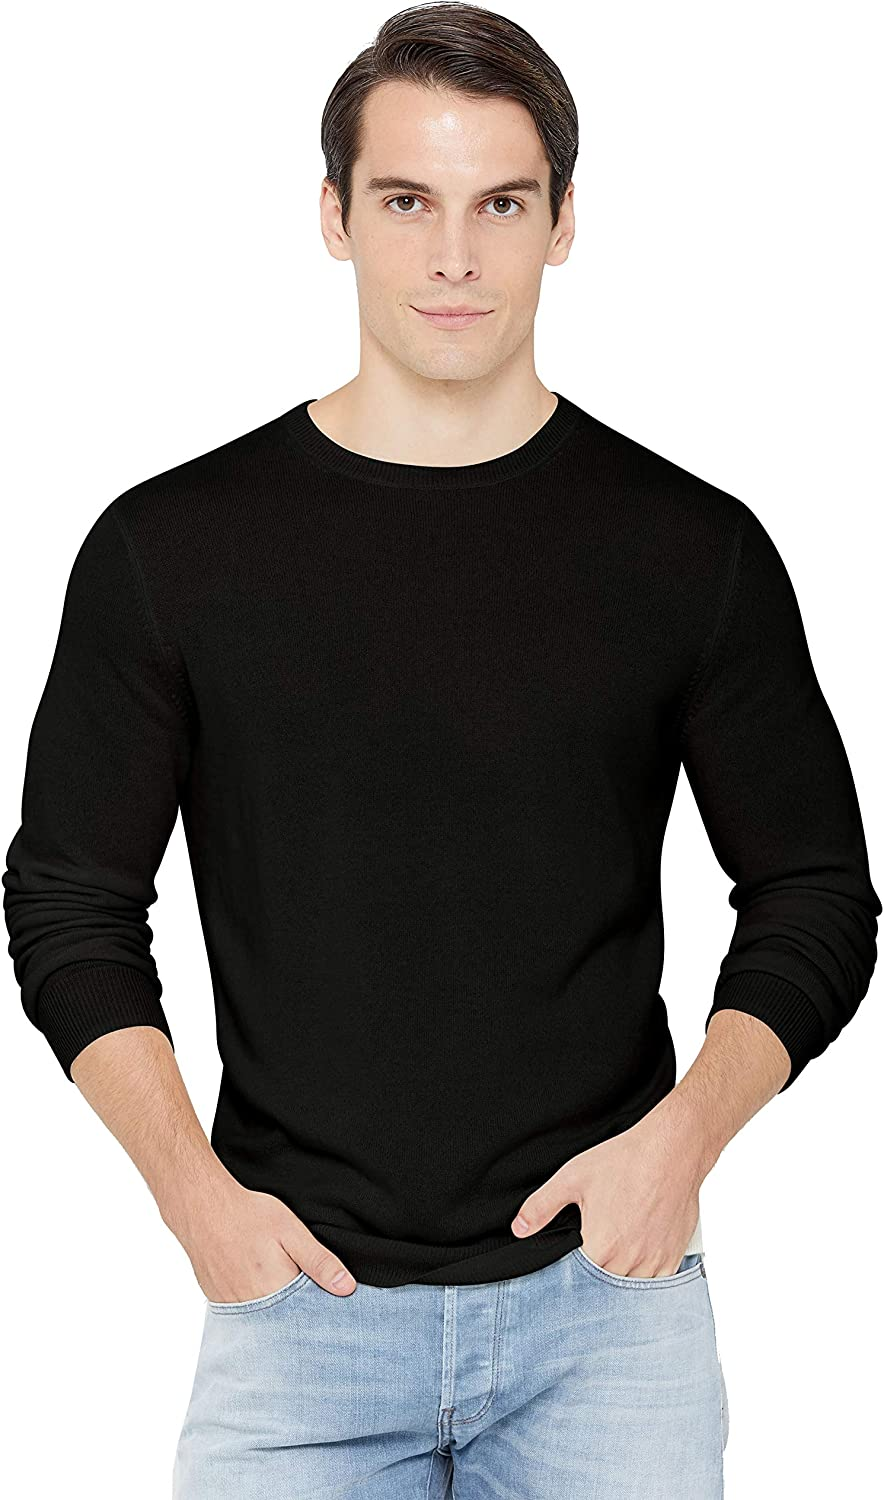 State Cashmere Men's Essential Crewneck Sweater 100% Pure Cashmere Classic Long Sleeve Pullover